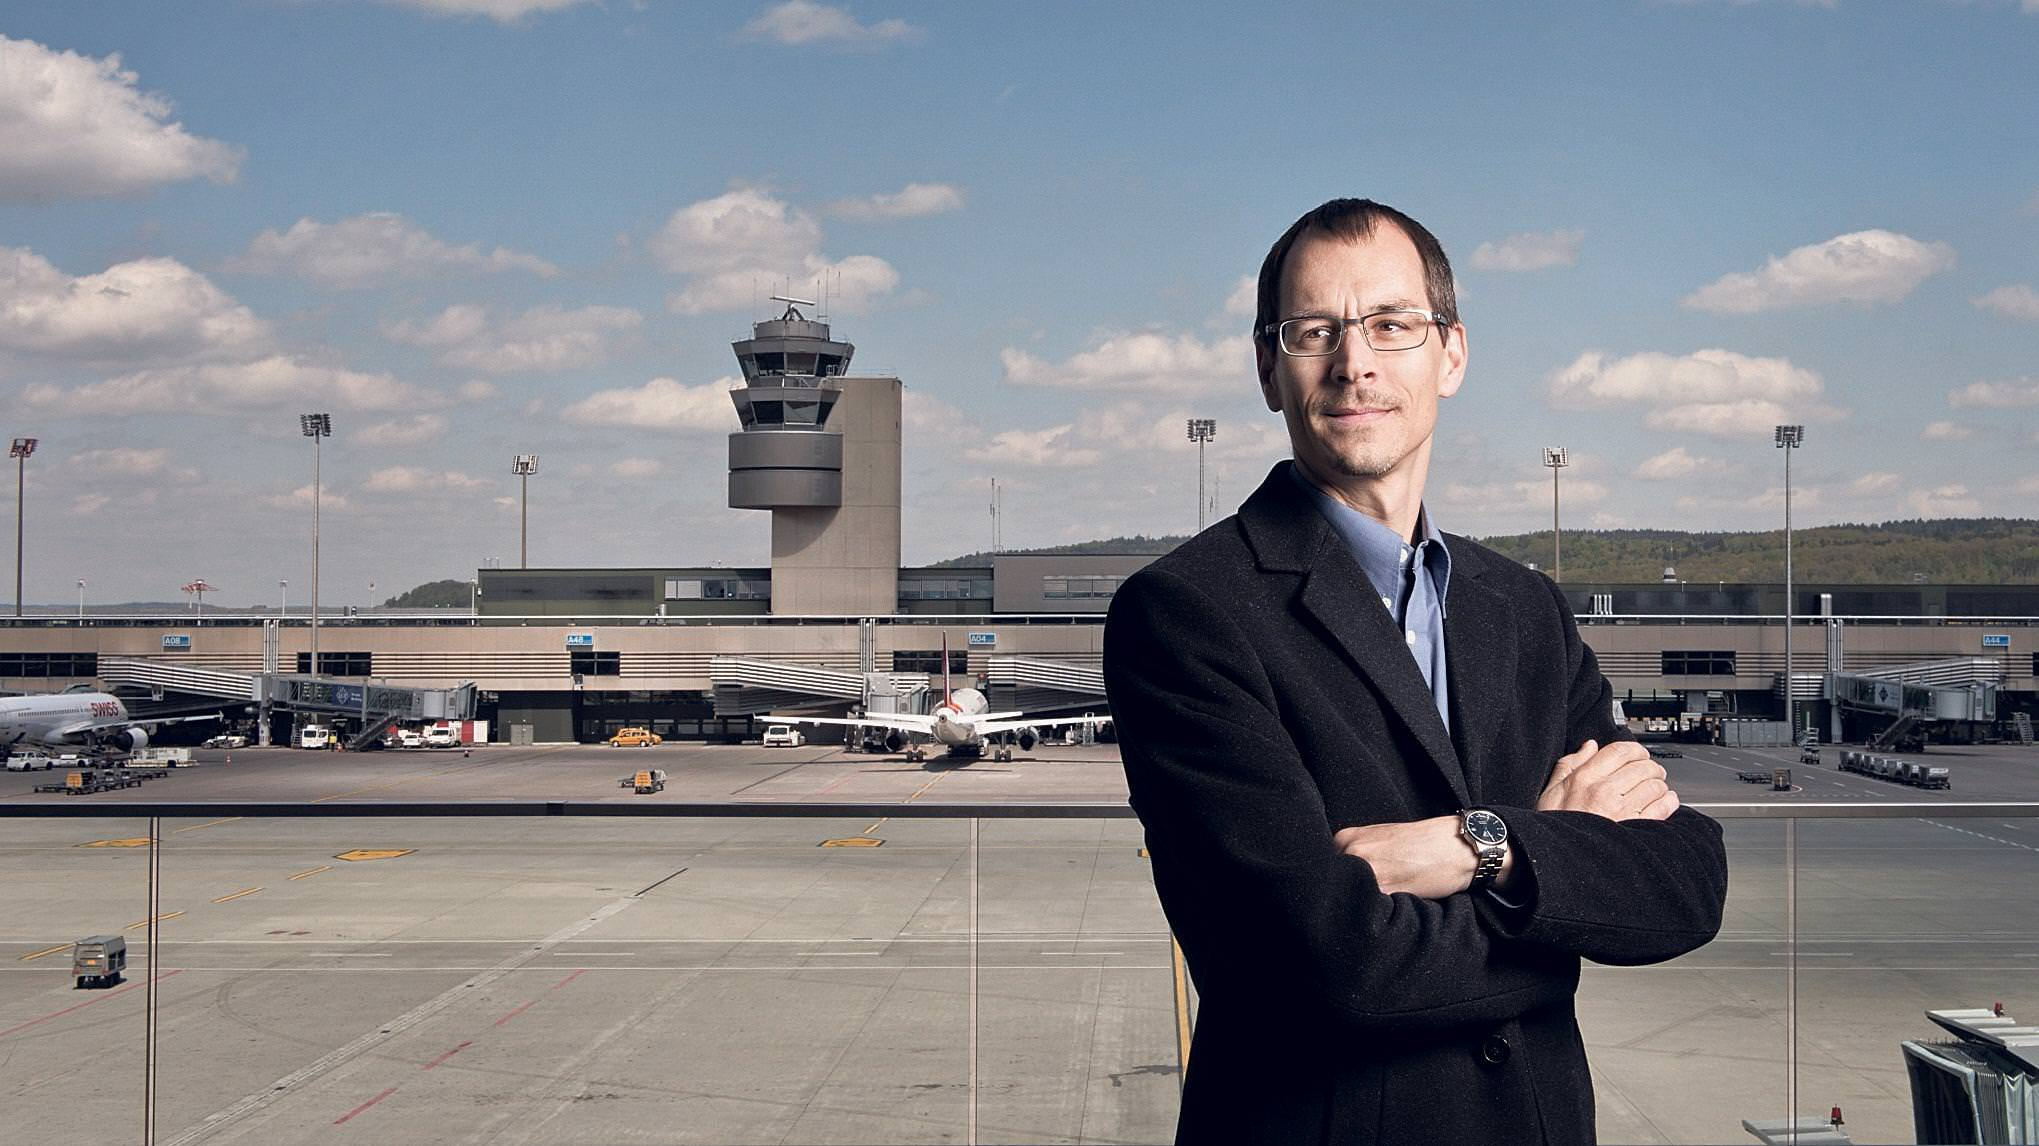 Andreas Wittmer at the airport